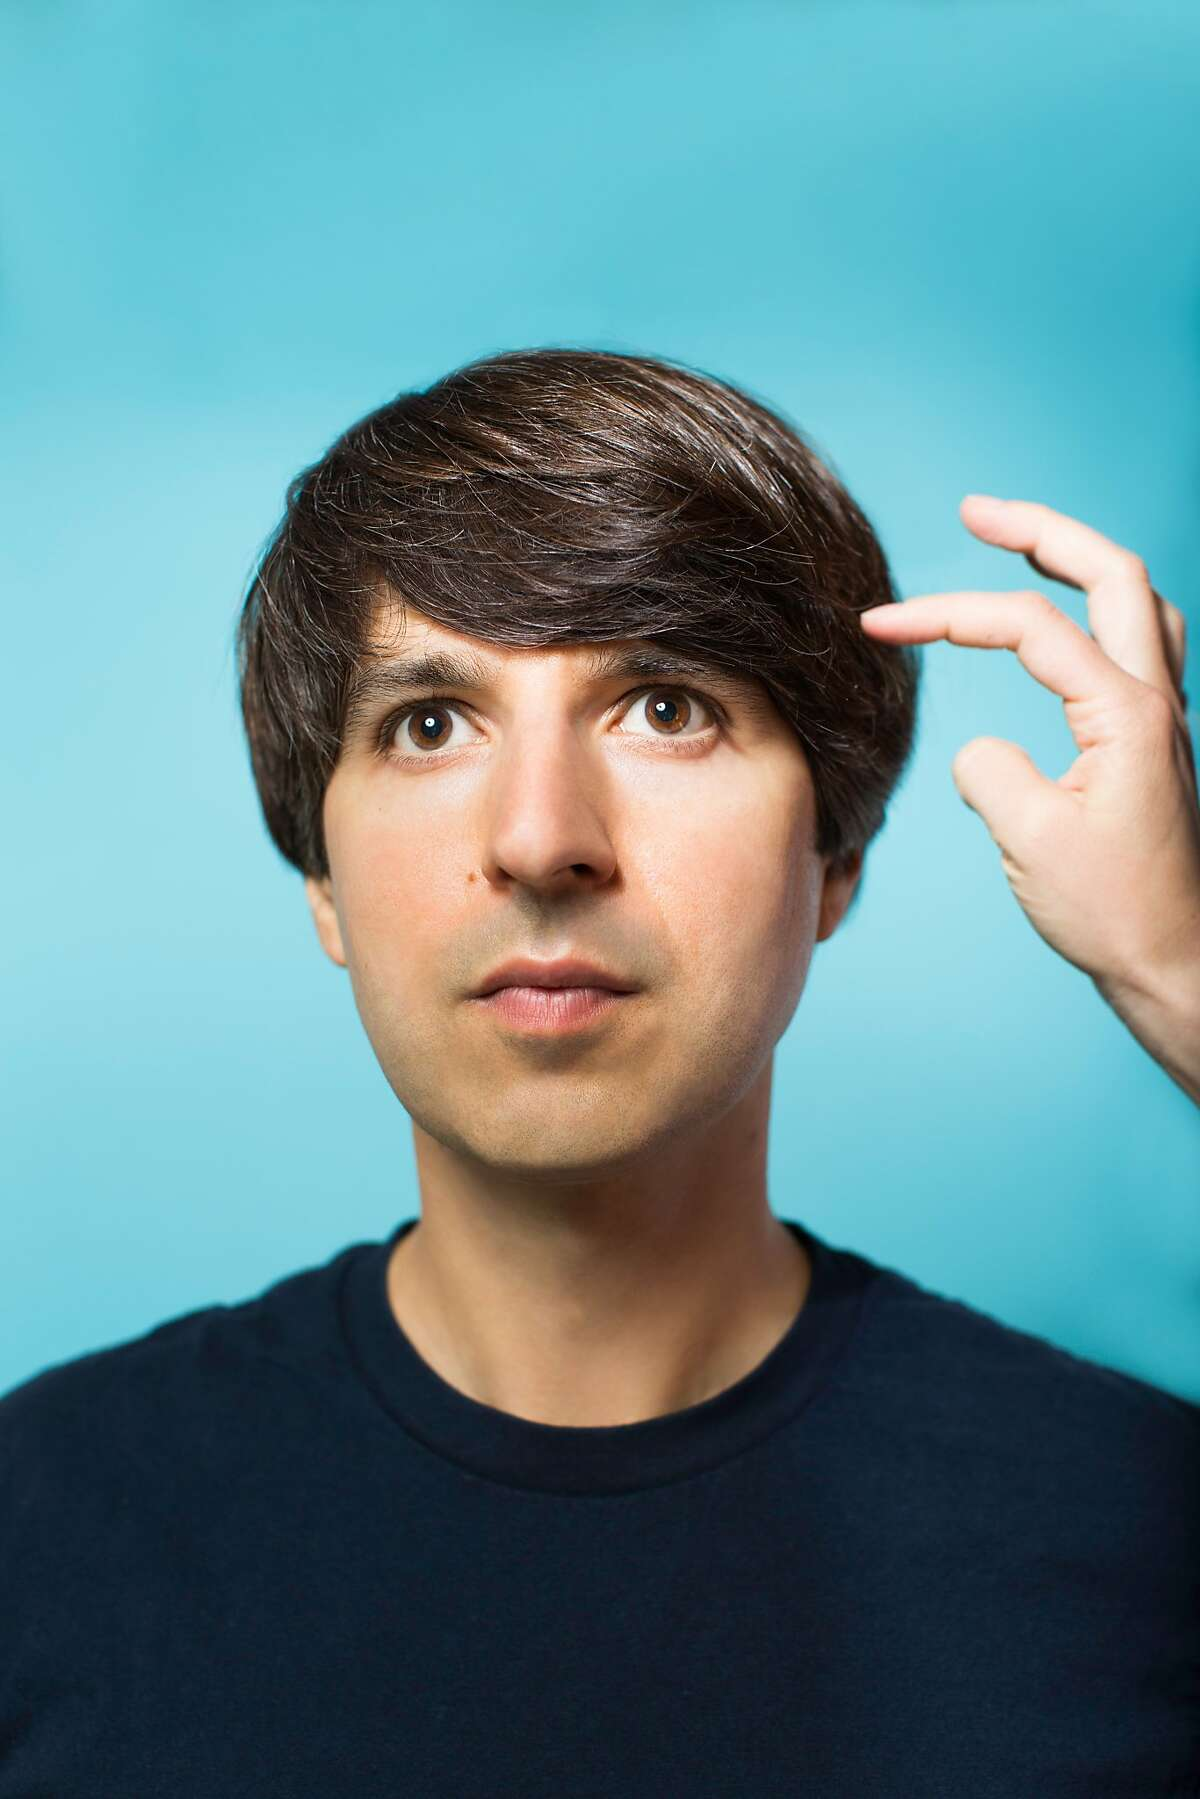 Comedian Demetri Martin has written books, acted in movies and been a regular